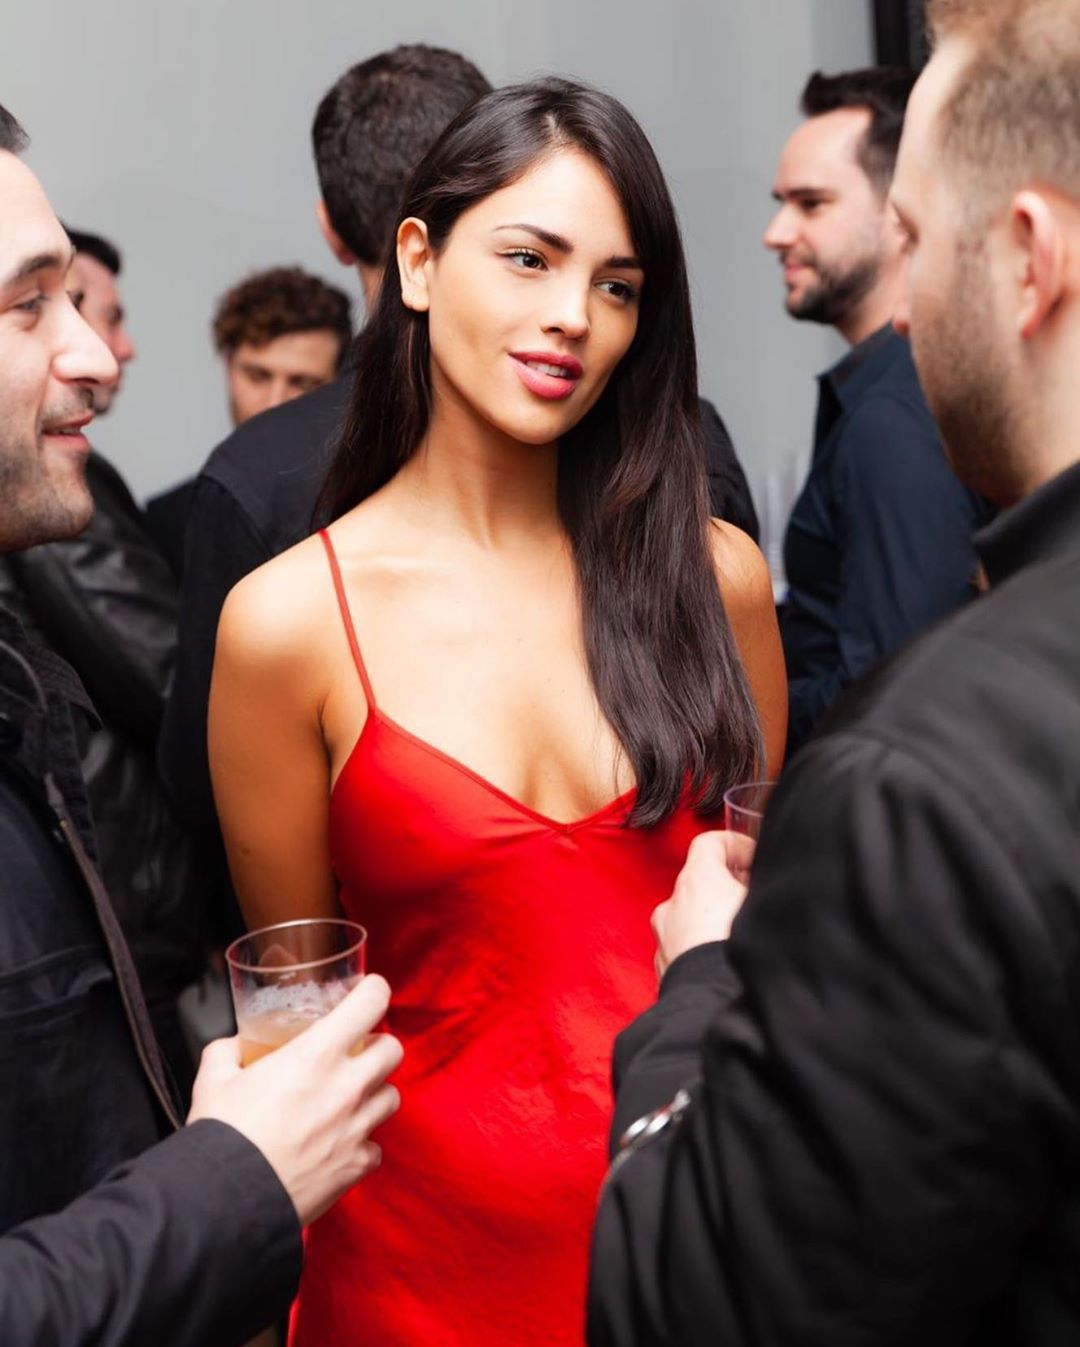 Eiza On Instagram I M Staring At Food 100 Dinner Party Dress Eiza Gonzalez Celebs